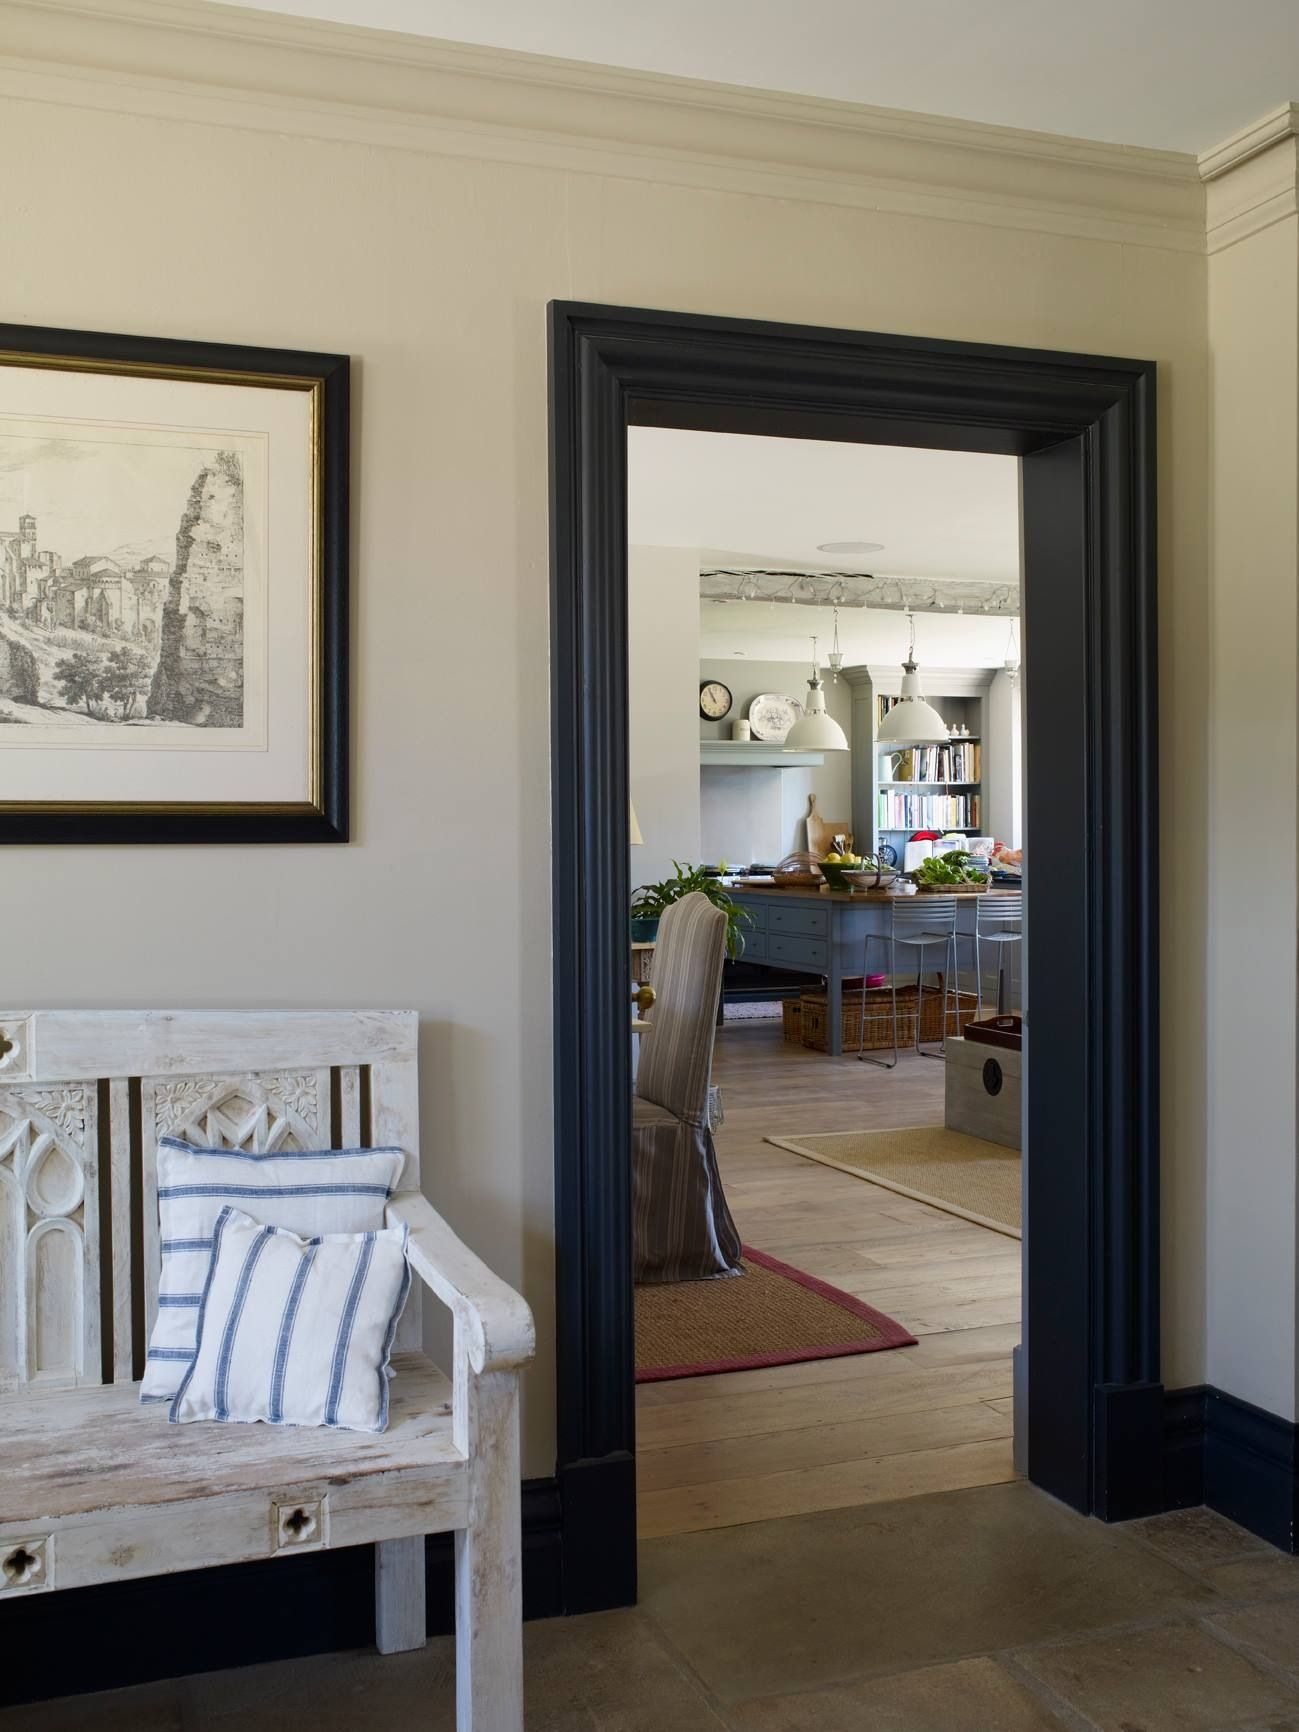 Crown Molding Painted To Match The Wall Color Statement Trim Baseboard In Contrasting House Garden Magazine Facebook Page Photo By Sarah